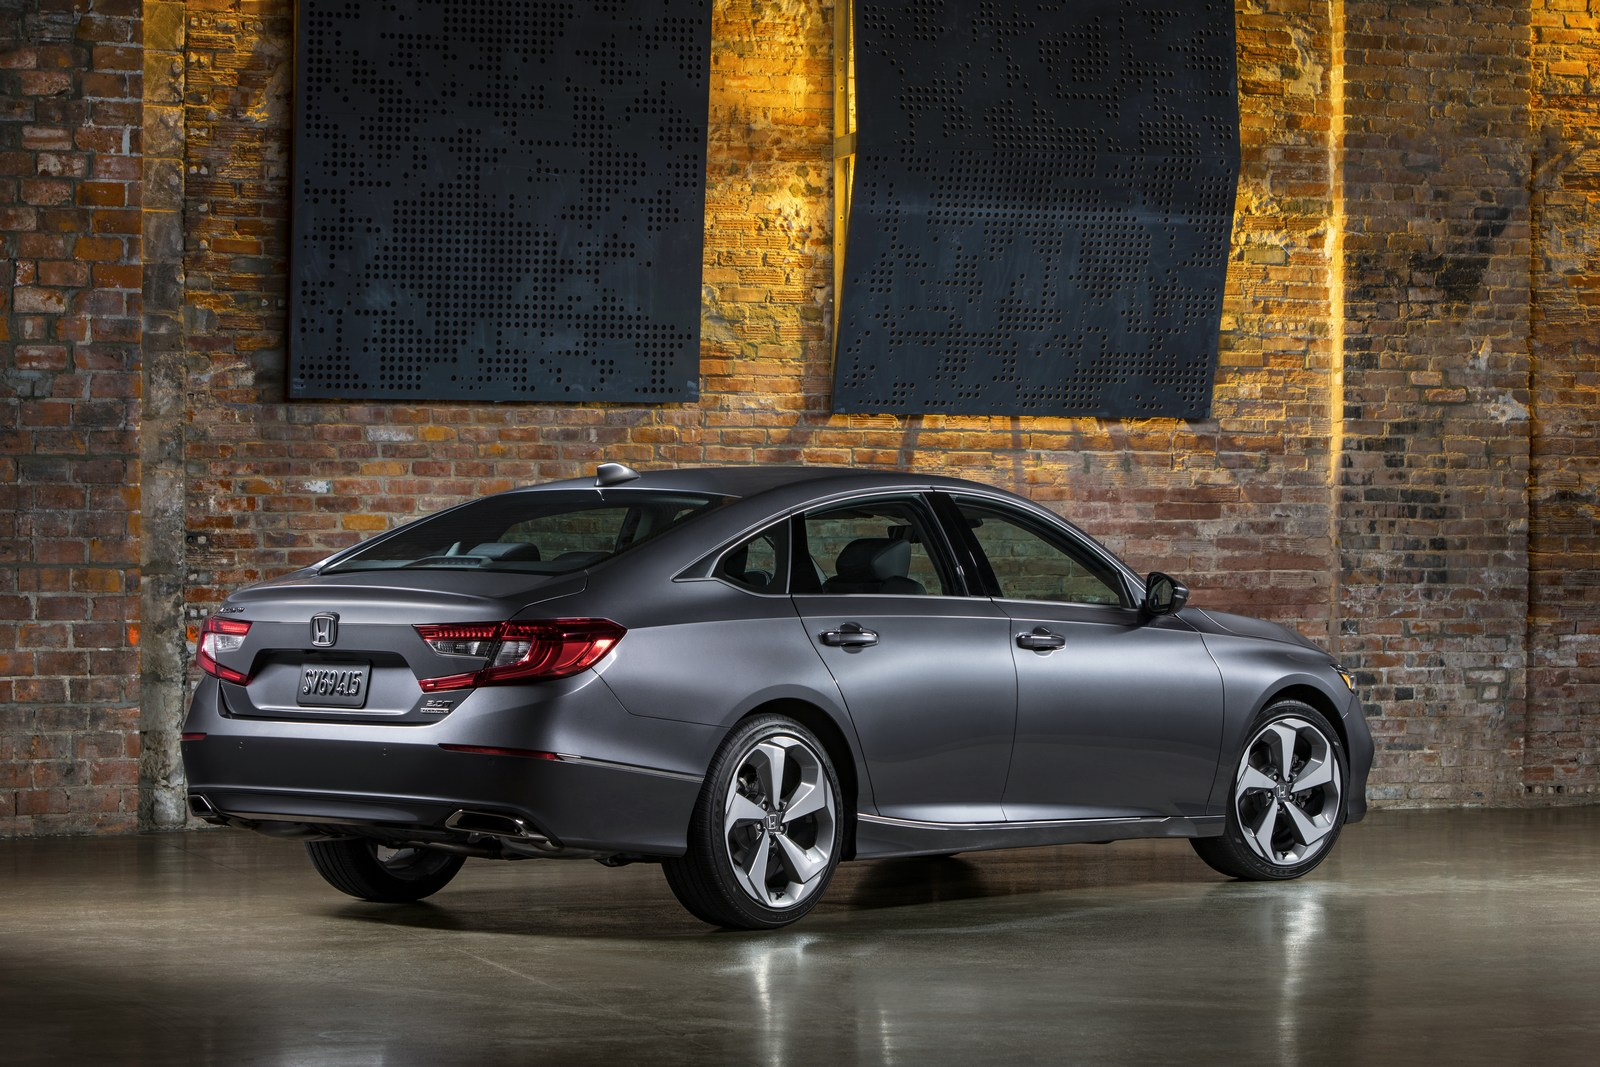 2018 Honda Accord Hybrid Fuel Economy EPA-rated At 47 MPG Combined - autoevolution